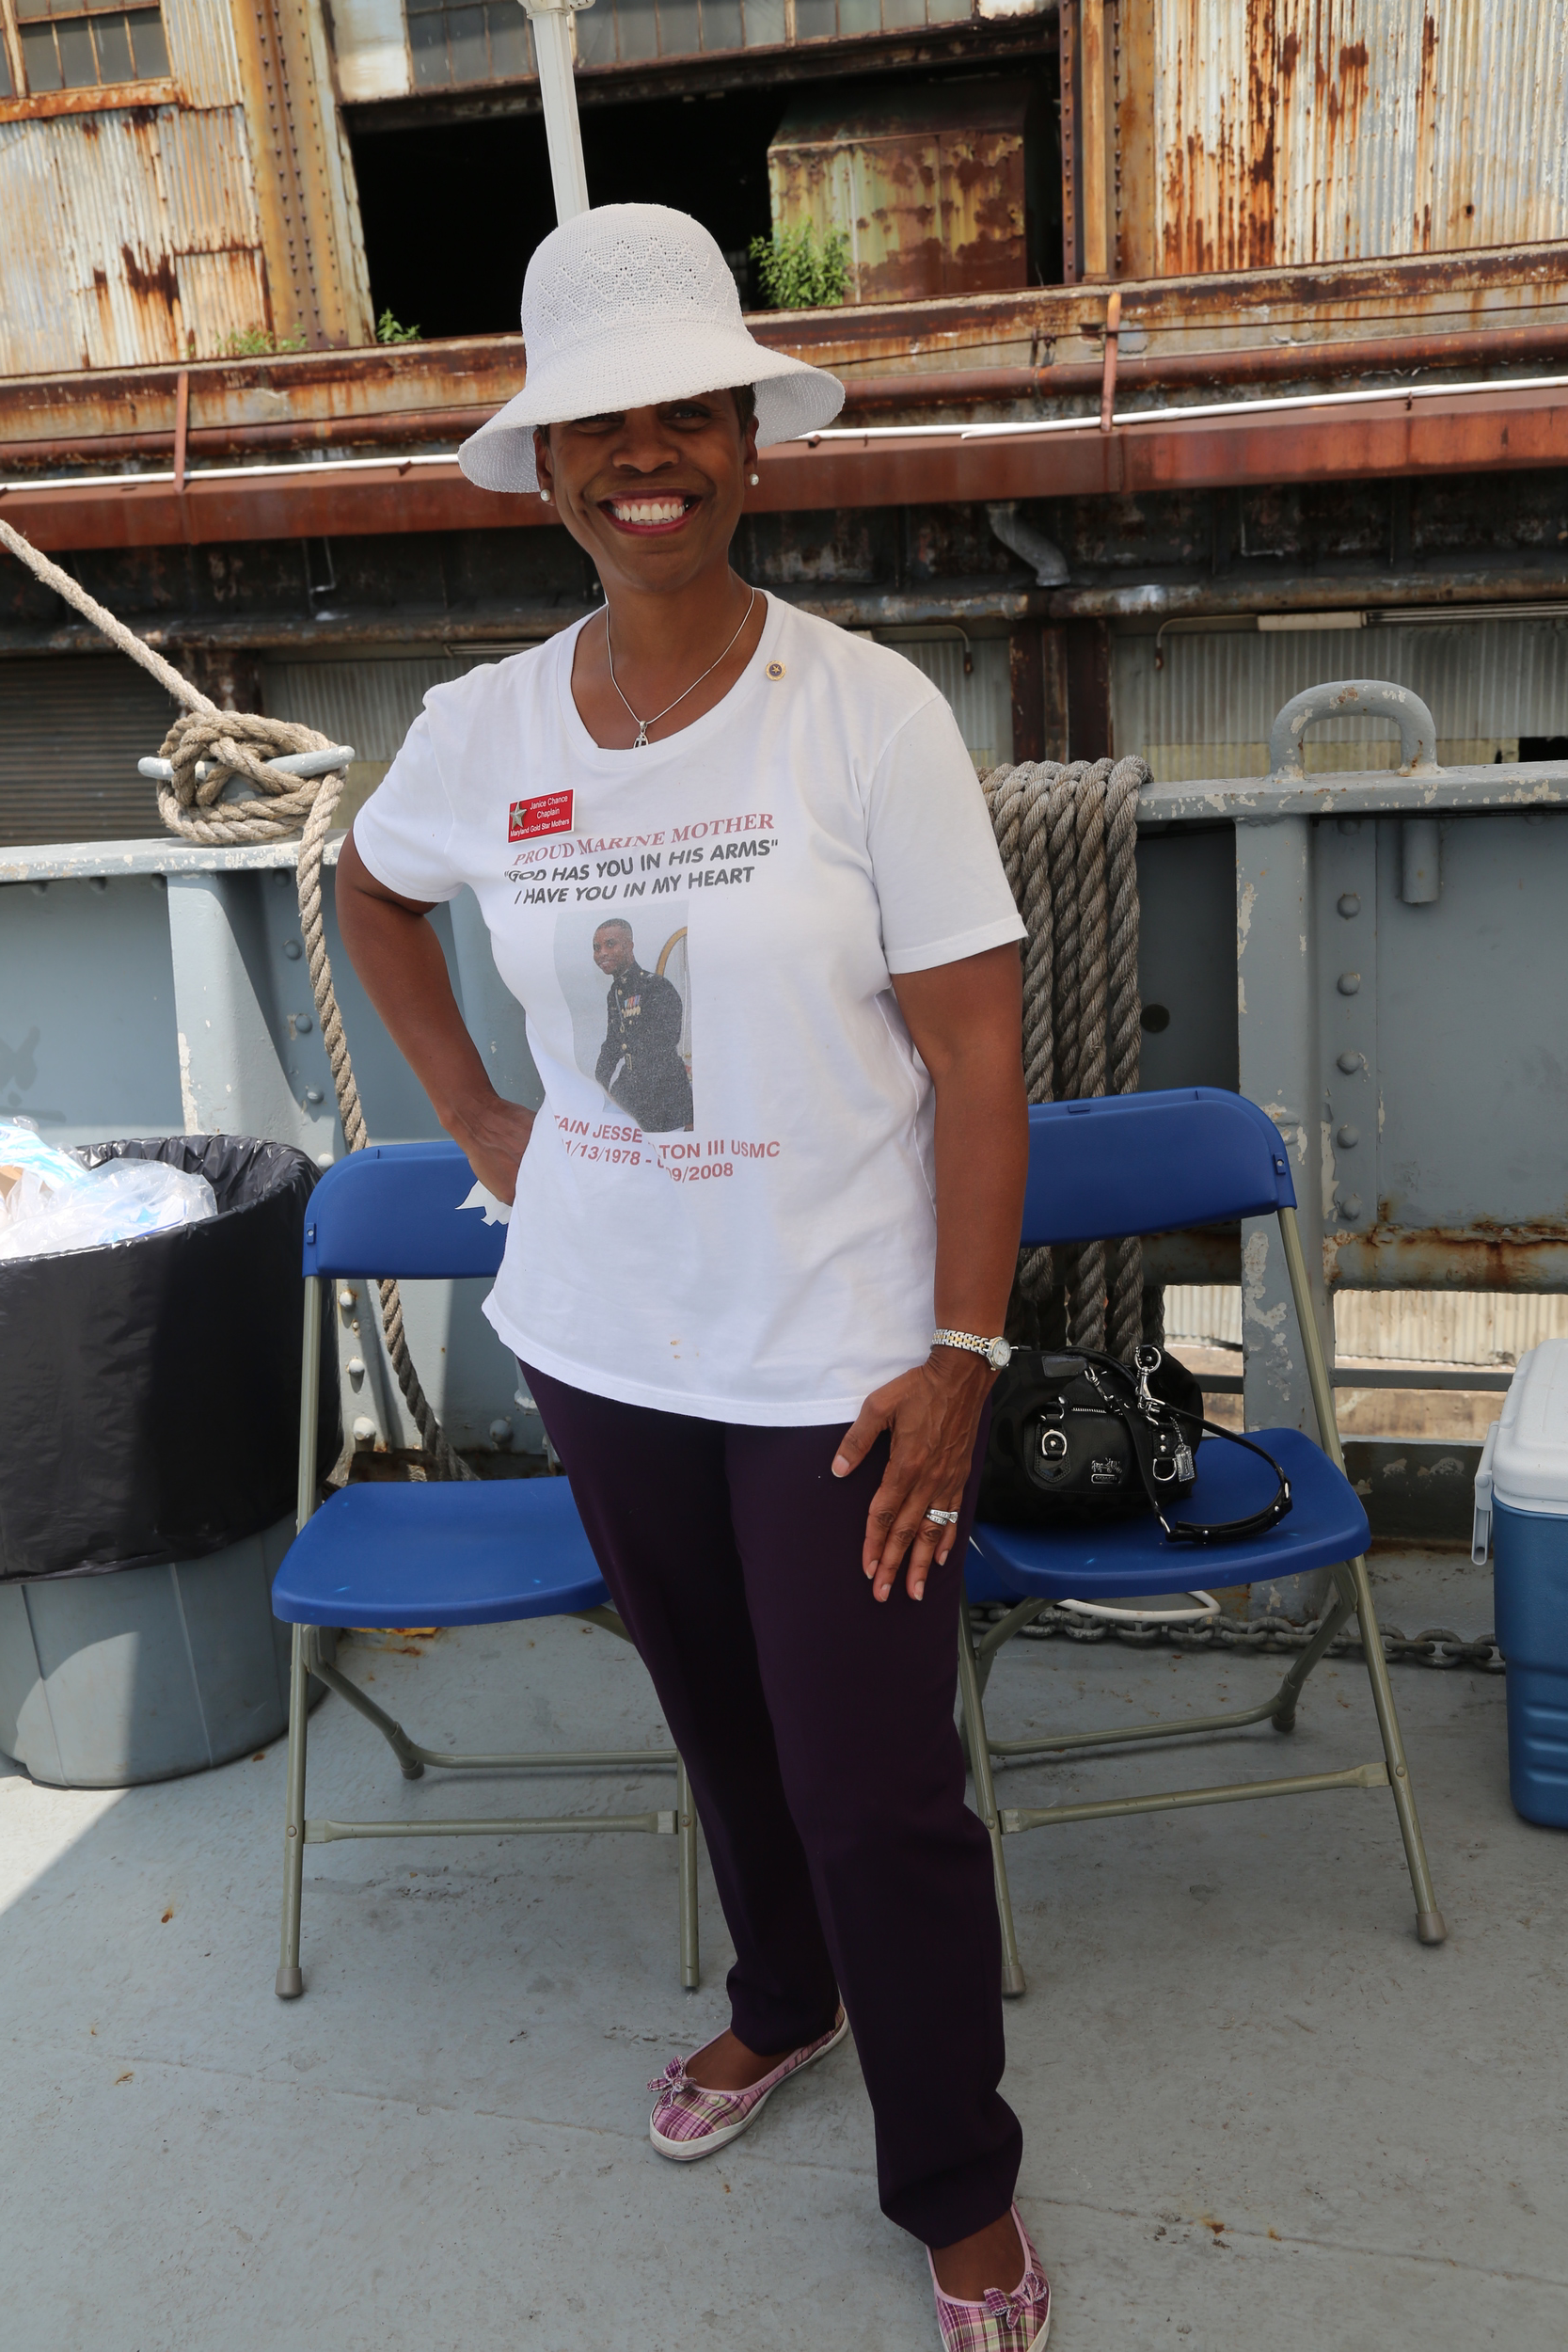 Her spirit and pride in her son, Captain Jesse Melton III USMC 11/23/78-9/9/08.is more than evident. Janice Chance, from Randallstown, Md, shows her love and pride. If you would like to read about her son, Jesse, click  here (Arlington Cemetery write-up).